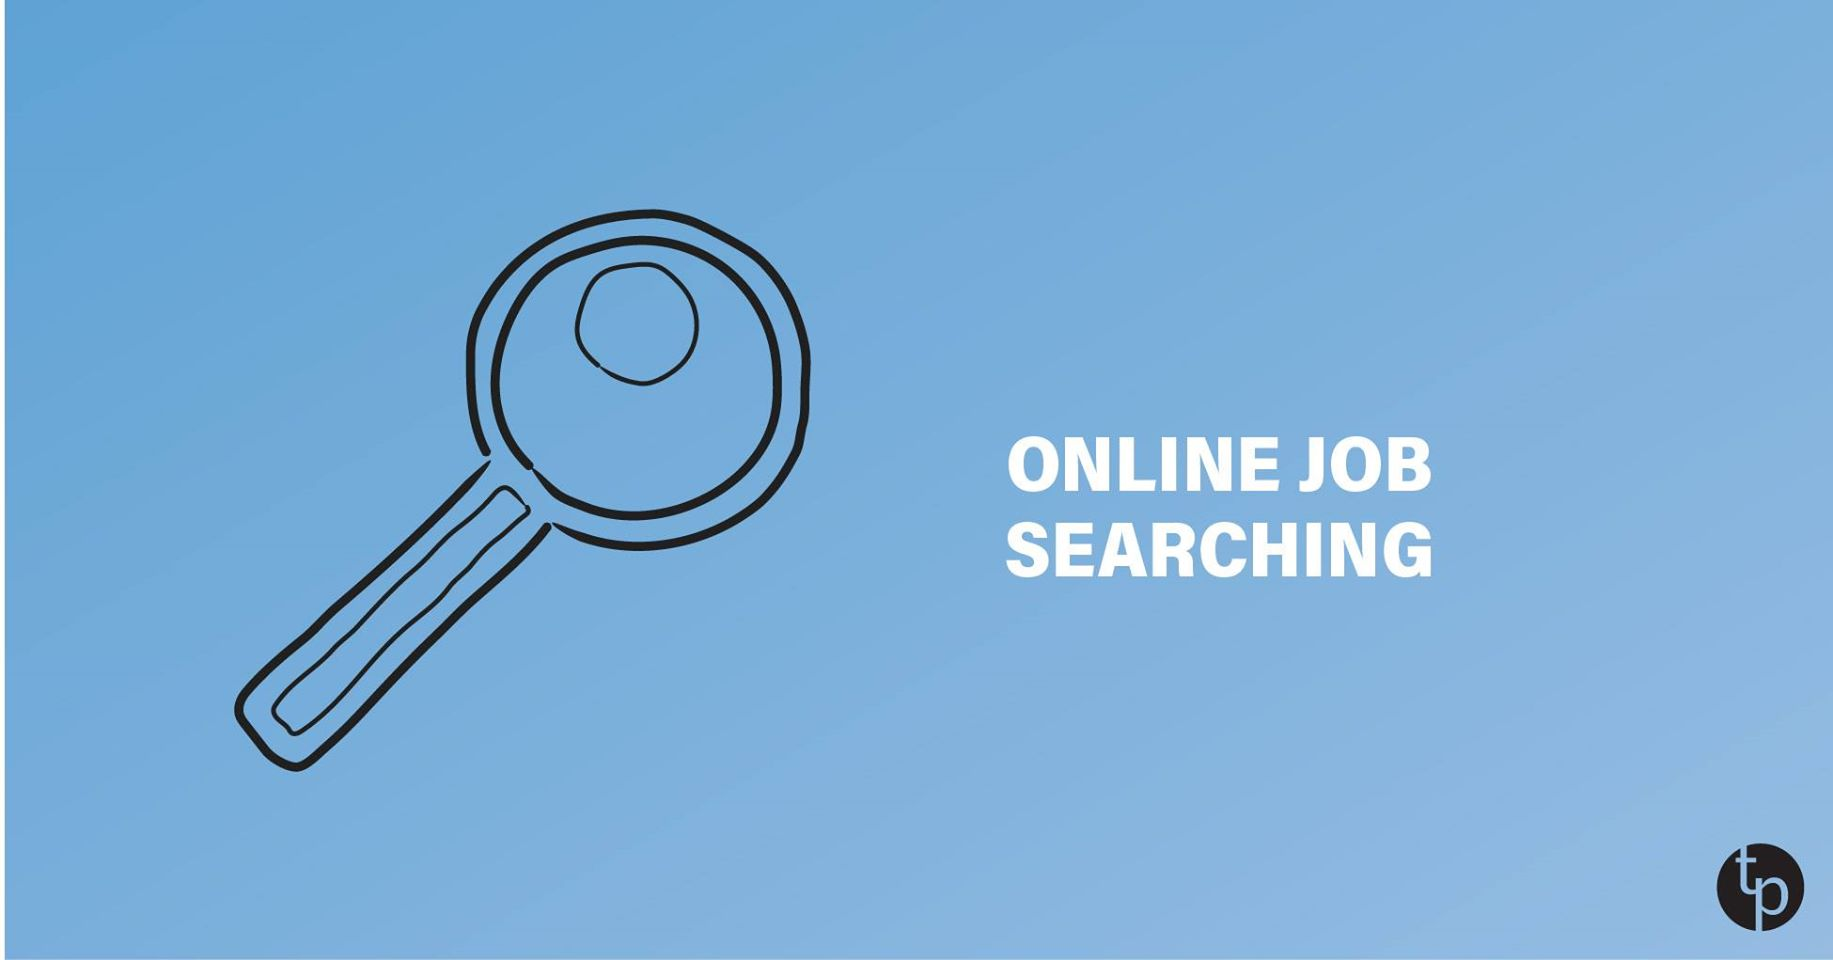 Online Job Searching - Virtual Event